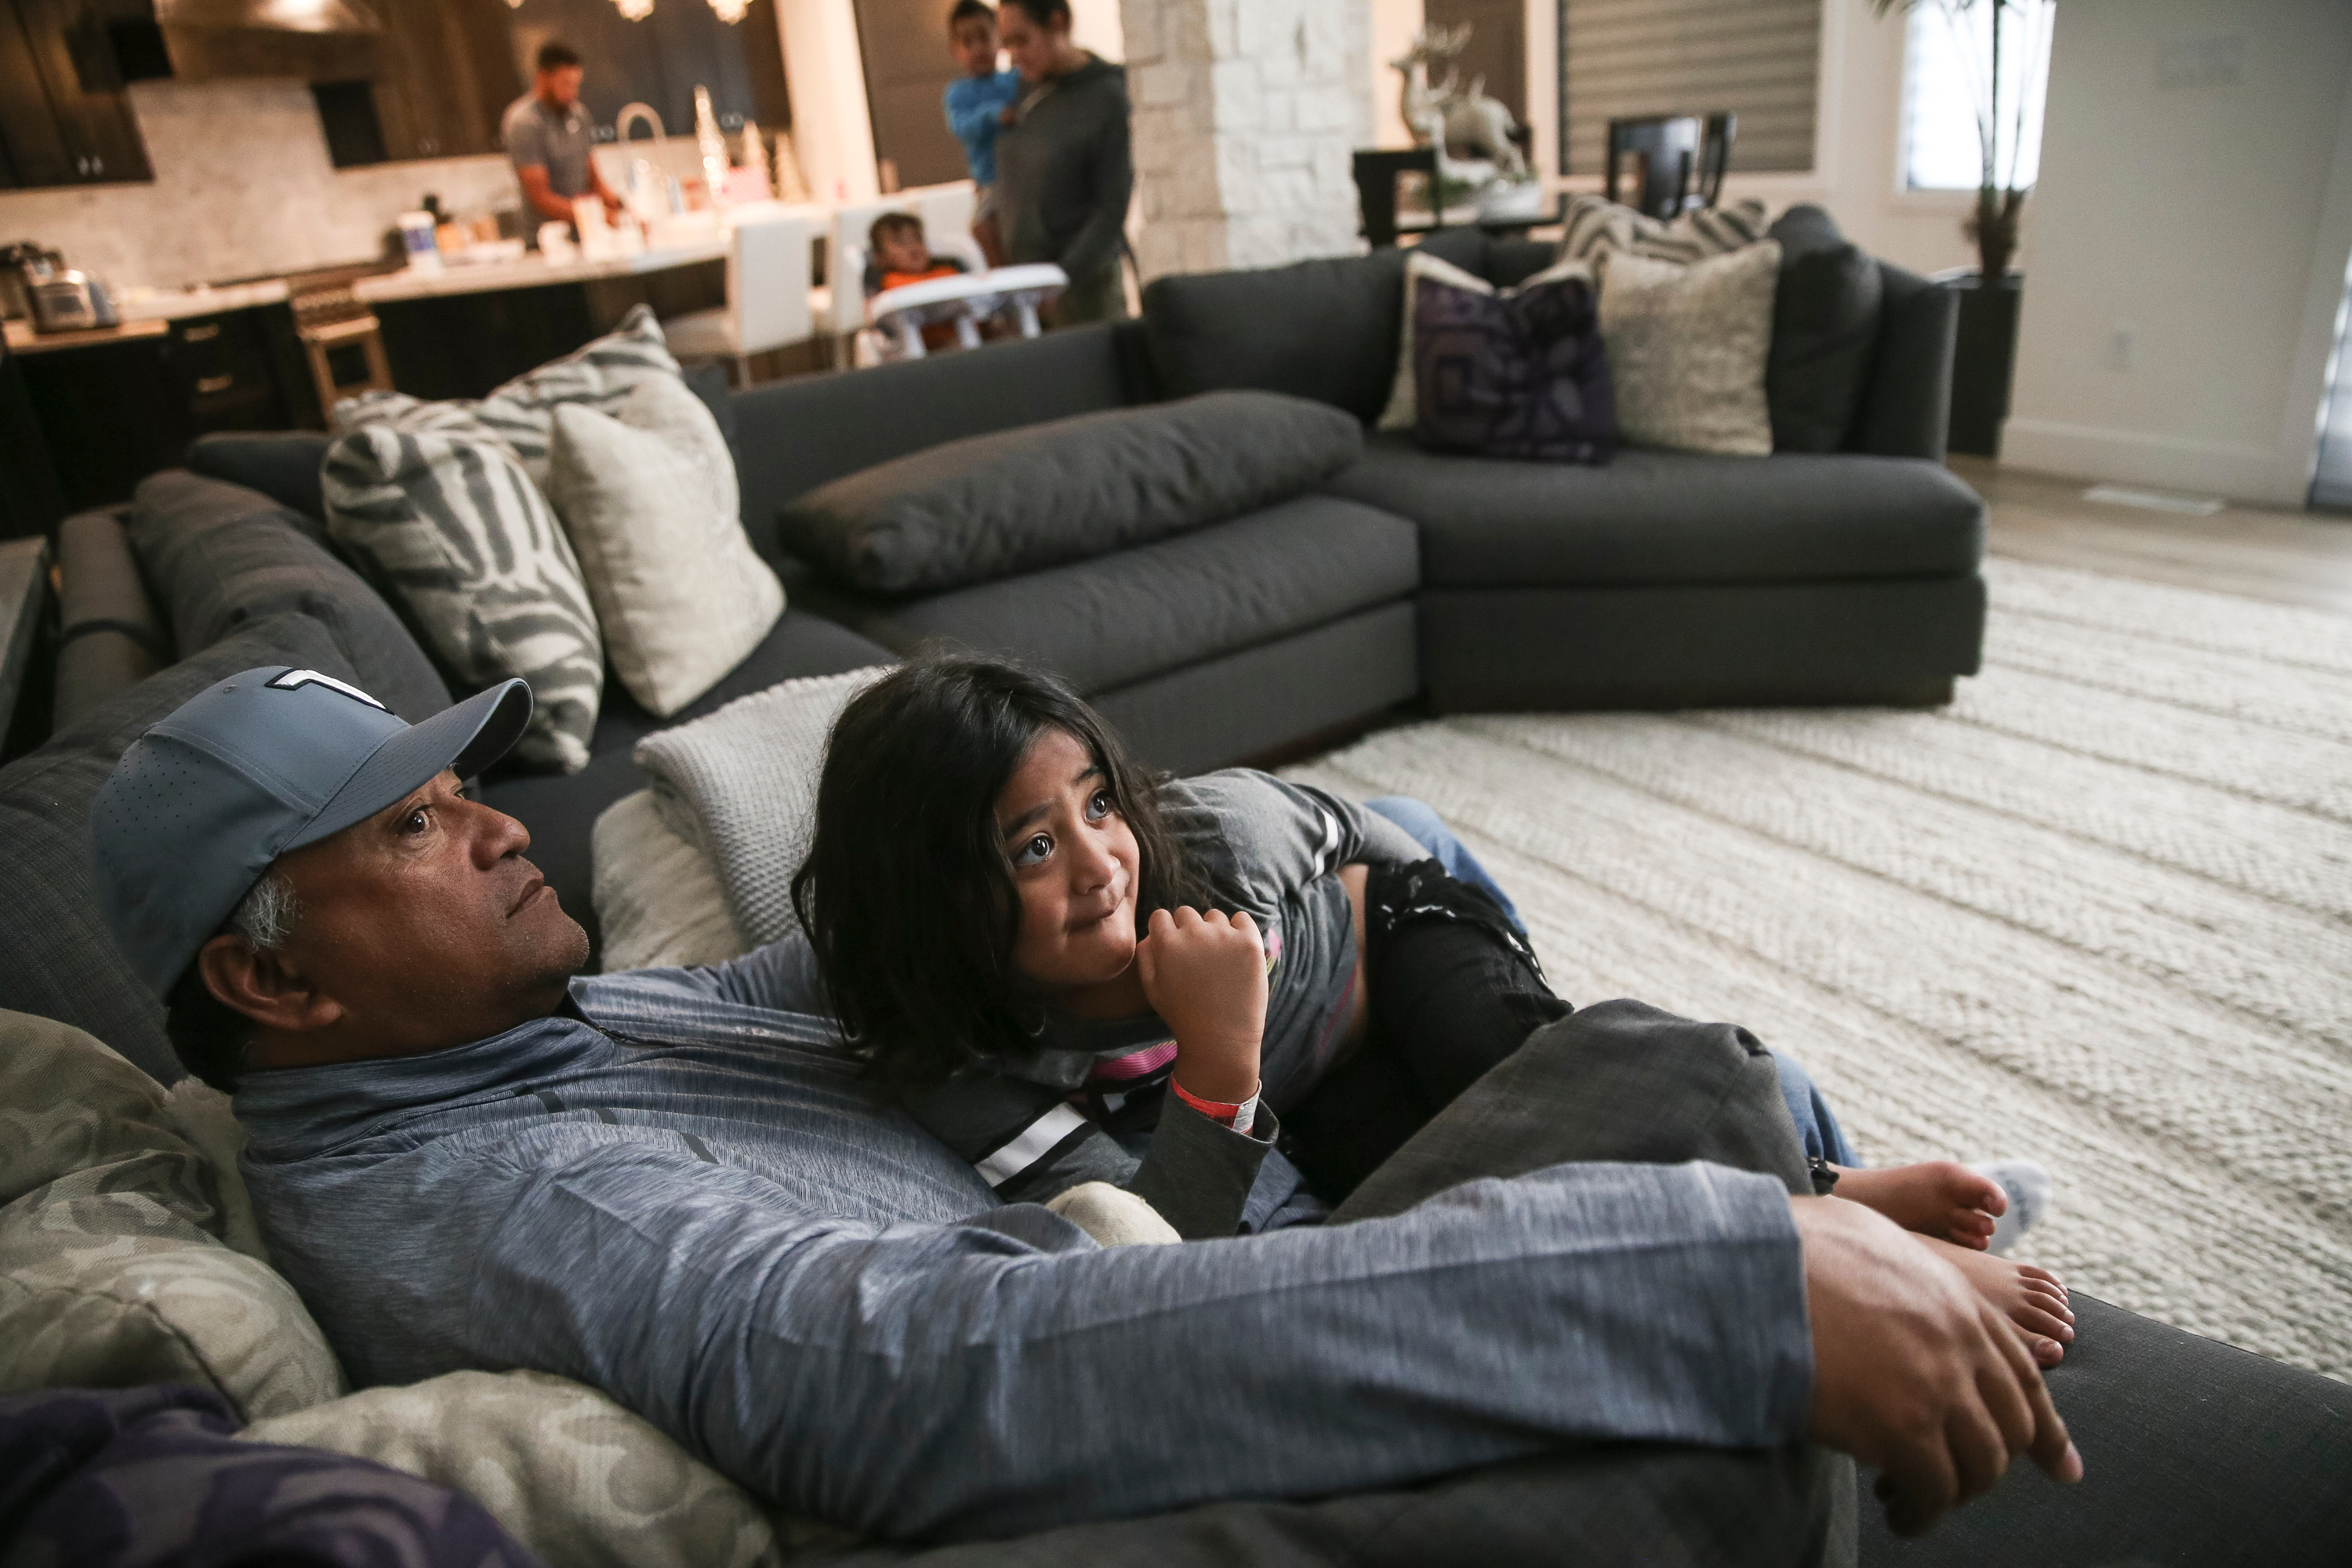 Kelepi Finau, father of PGA golfer Tony Finau, watches a movie with his granddaughter, Leilene, 5, at Tony's home in Lehi on Tuesday, Feb. 6, 2018. Leilene is Tony's daughter.